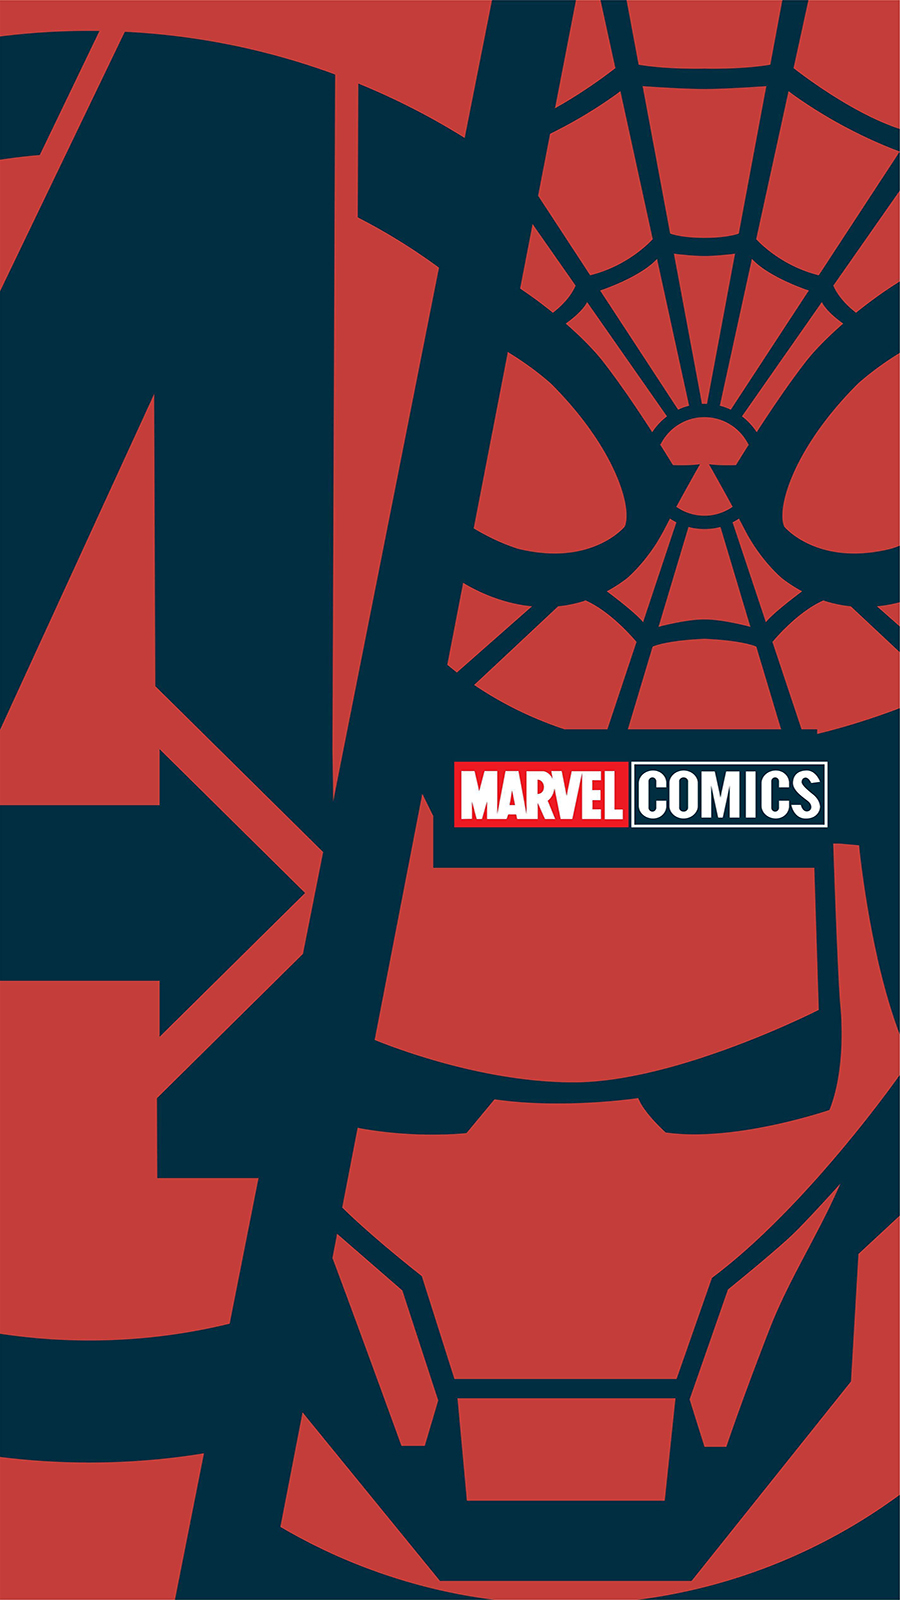 Marvel Comics Background Wallpapers Free Download